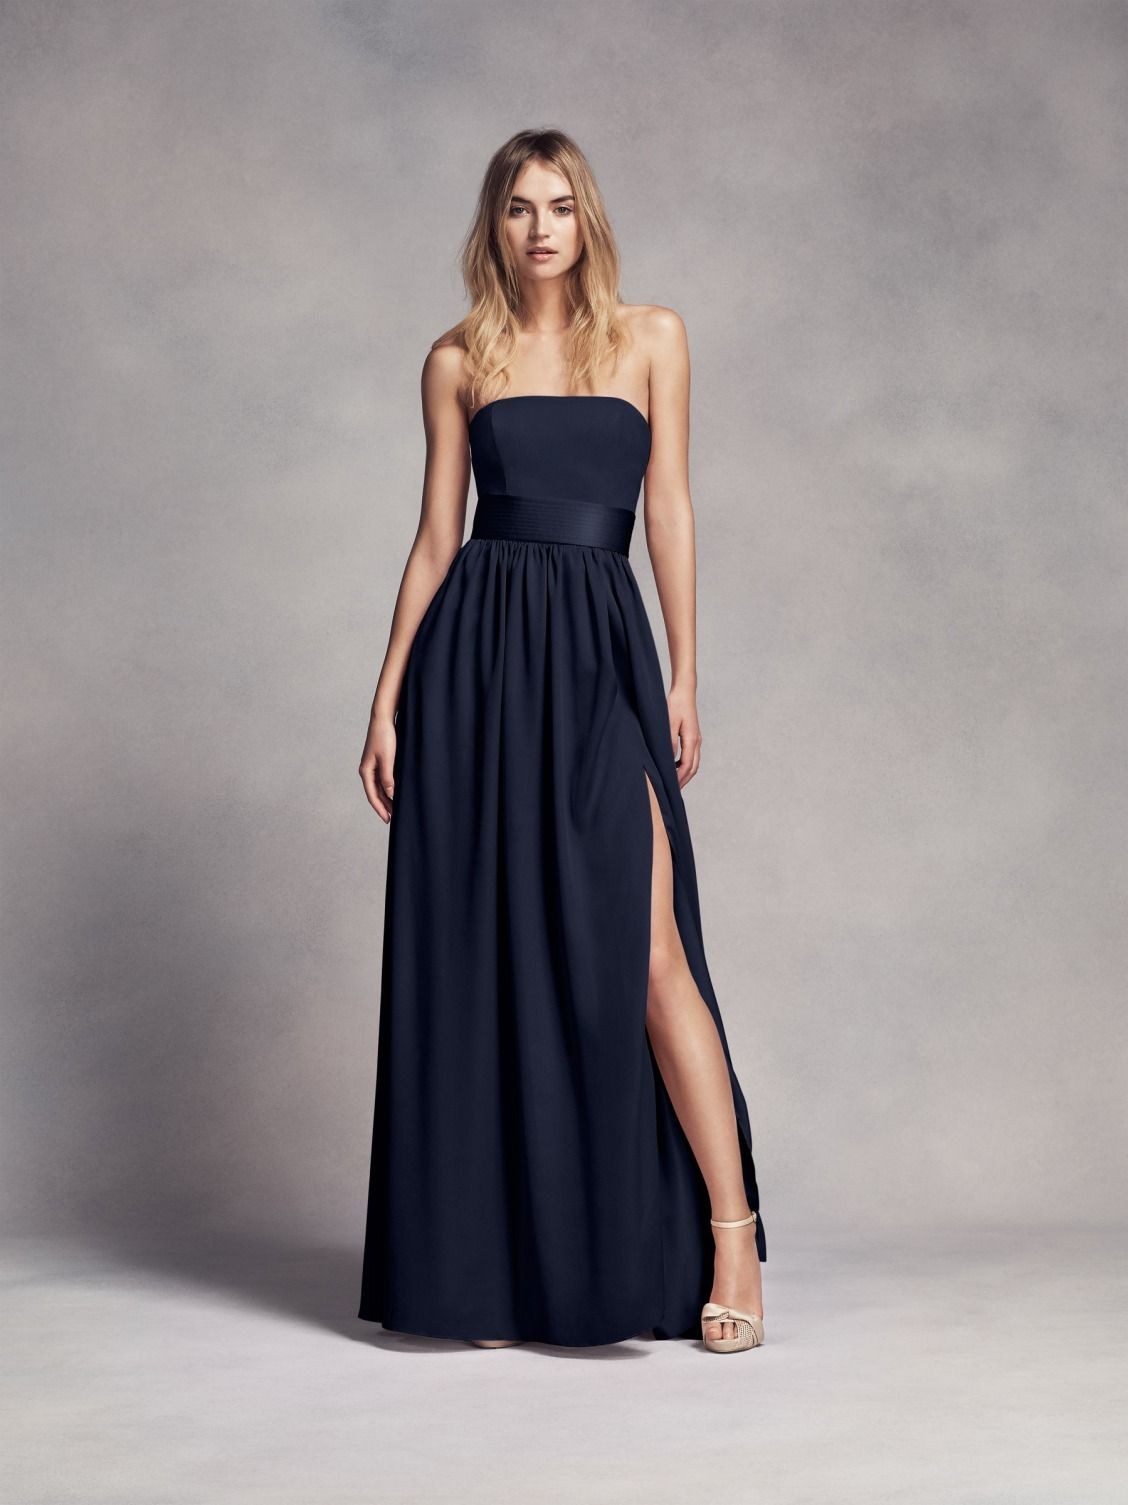 Long strapless midnight blue white by vera wang bridesmaid dress